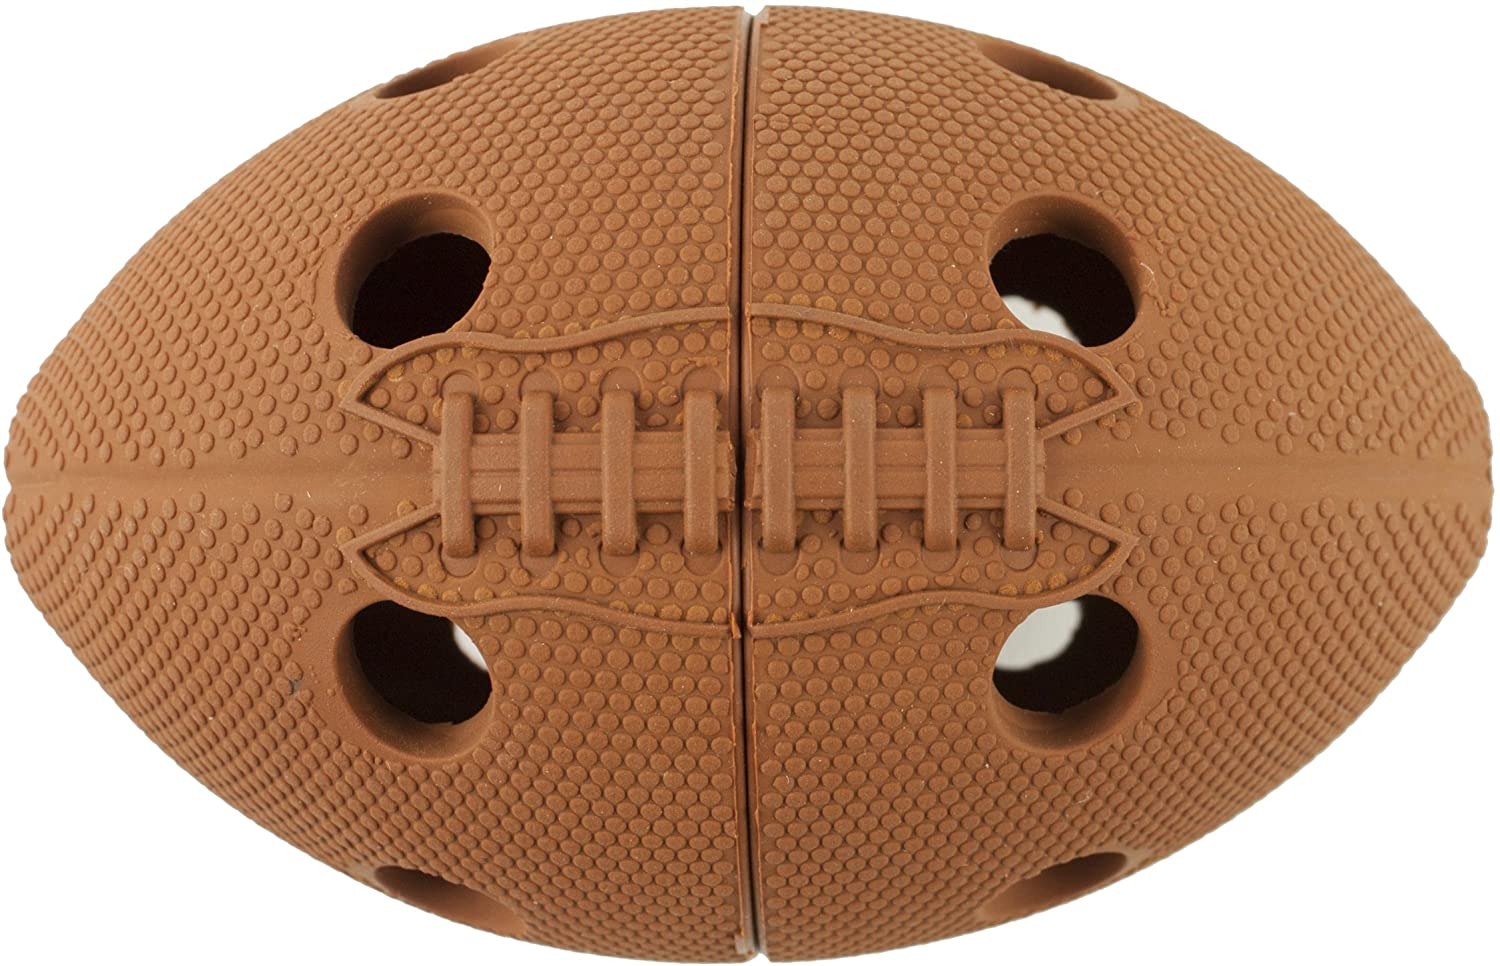 petprojekt Football Tretball Dog Treat Ball, Brown